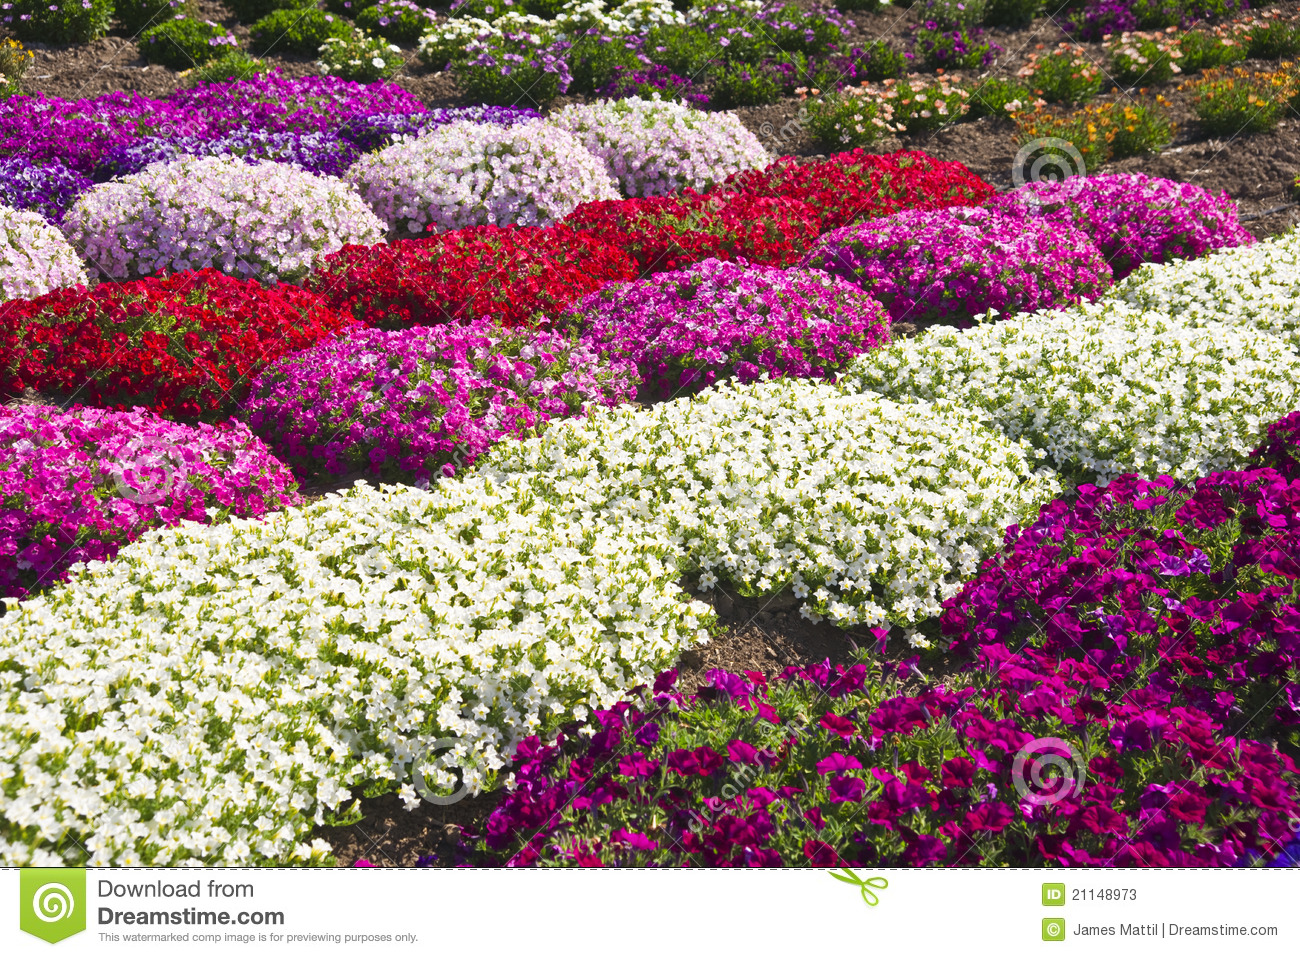 Summer Flowers stock image. Image of pink, vibrant, colorful